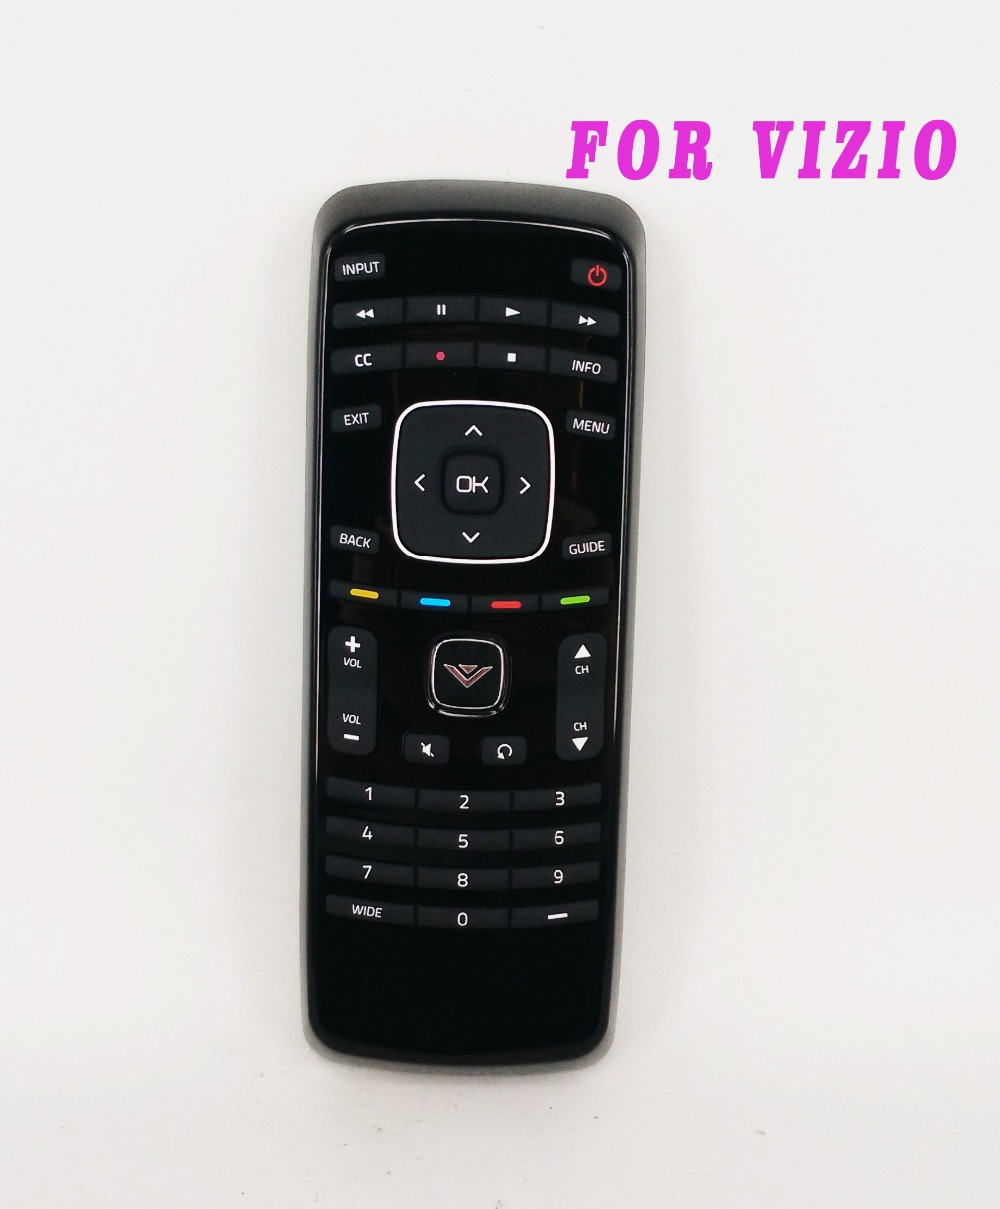 vizio tv price. Used Original Remote Control XRT010 For VIZIO TV Control(China (Mainland)) Vizio Tv Price